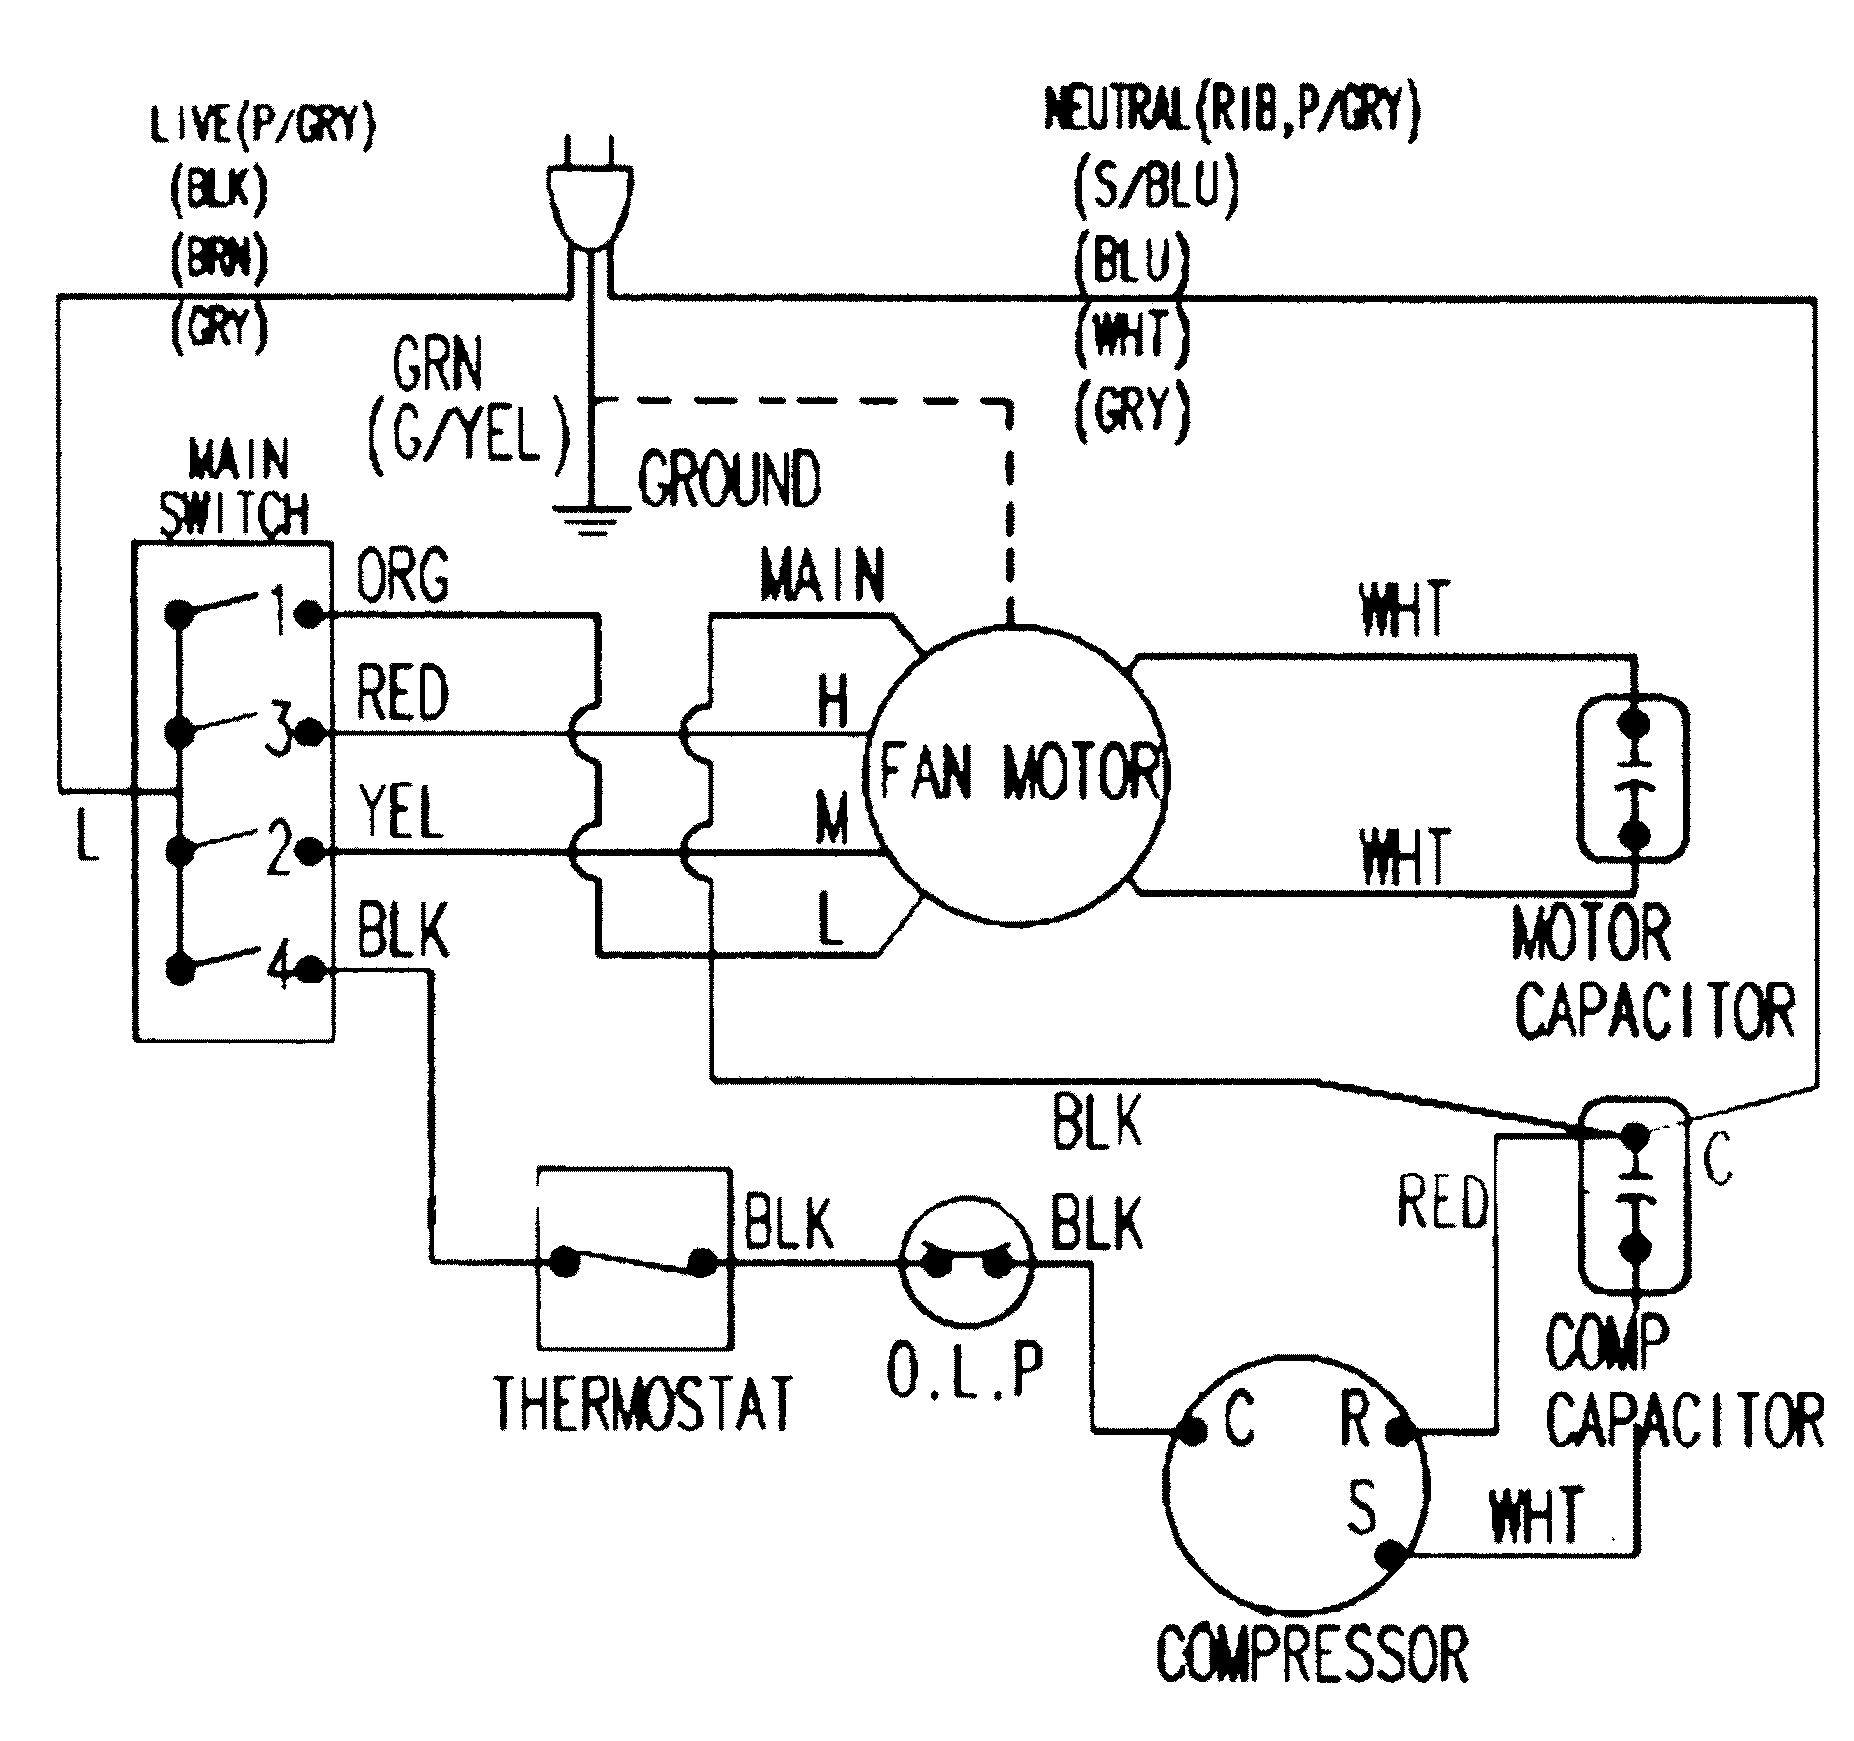 Vav Wiring Diagram Mechanical Wiring Riser Drawing Free Wiring – Lg Heat Pump Wiring Diagram